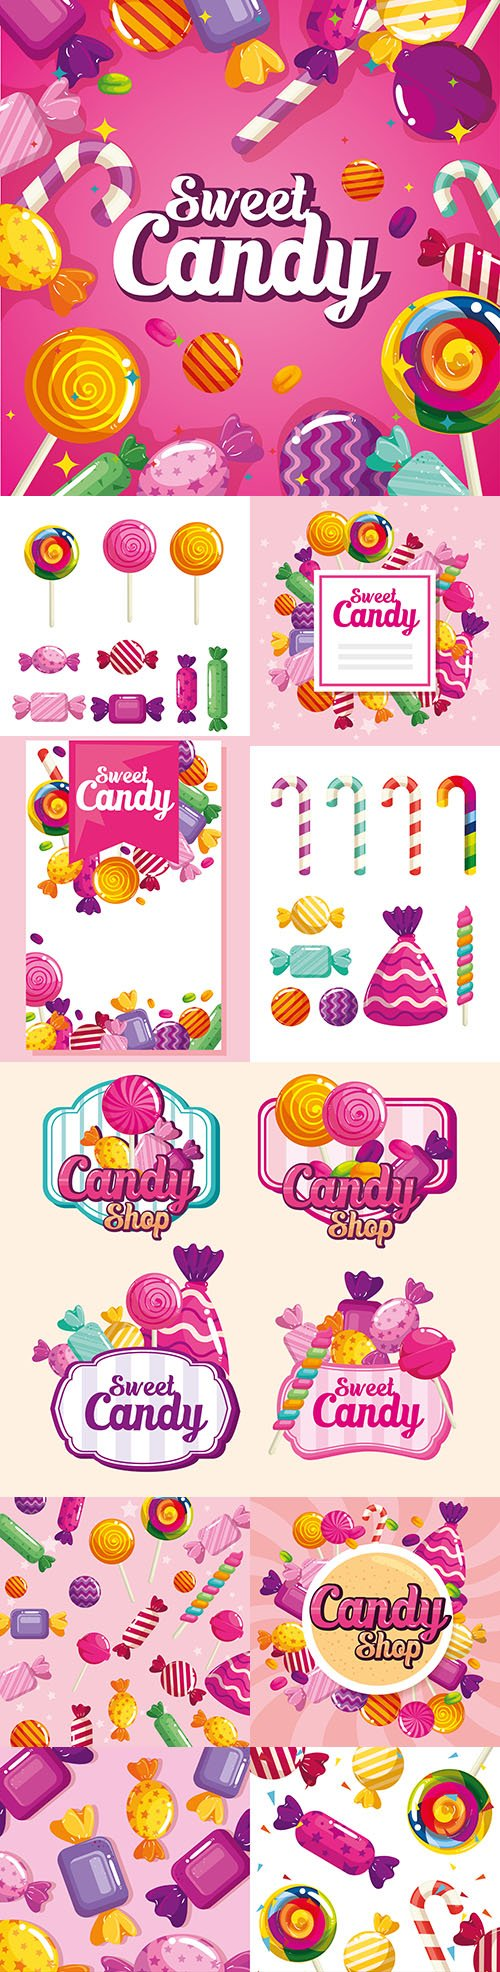 Sweet lollipop and candy delicious dessert painted illustrations